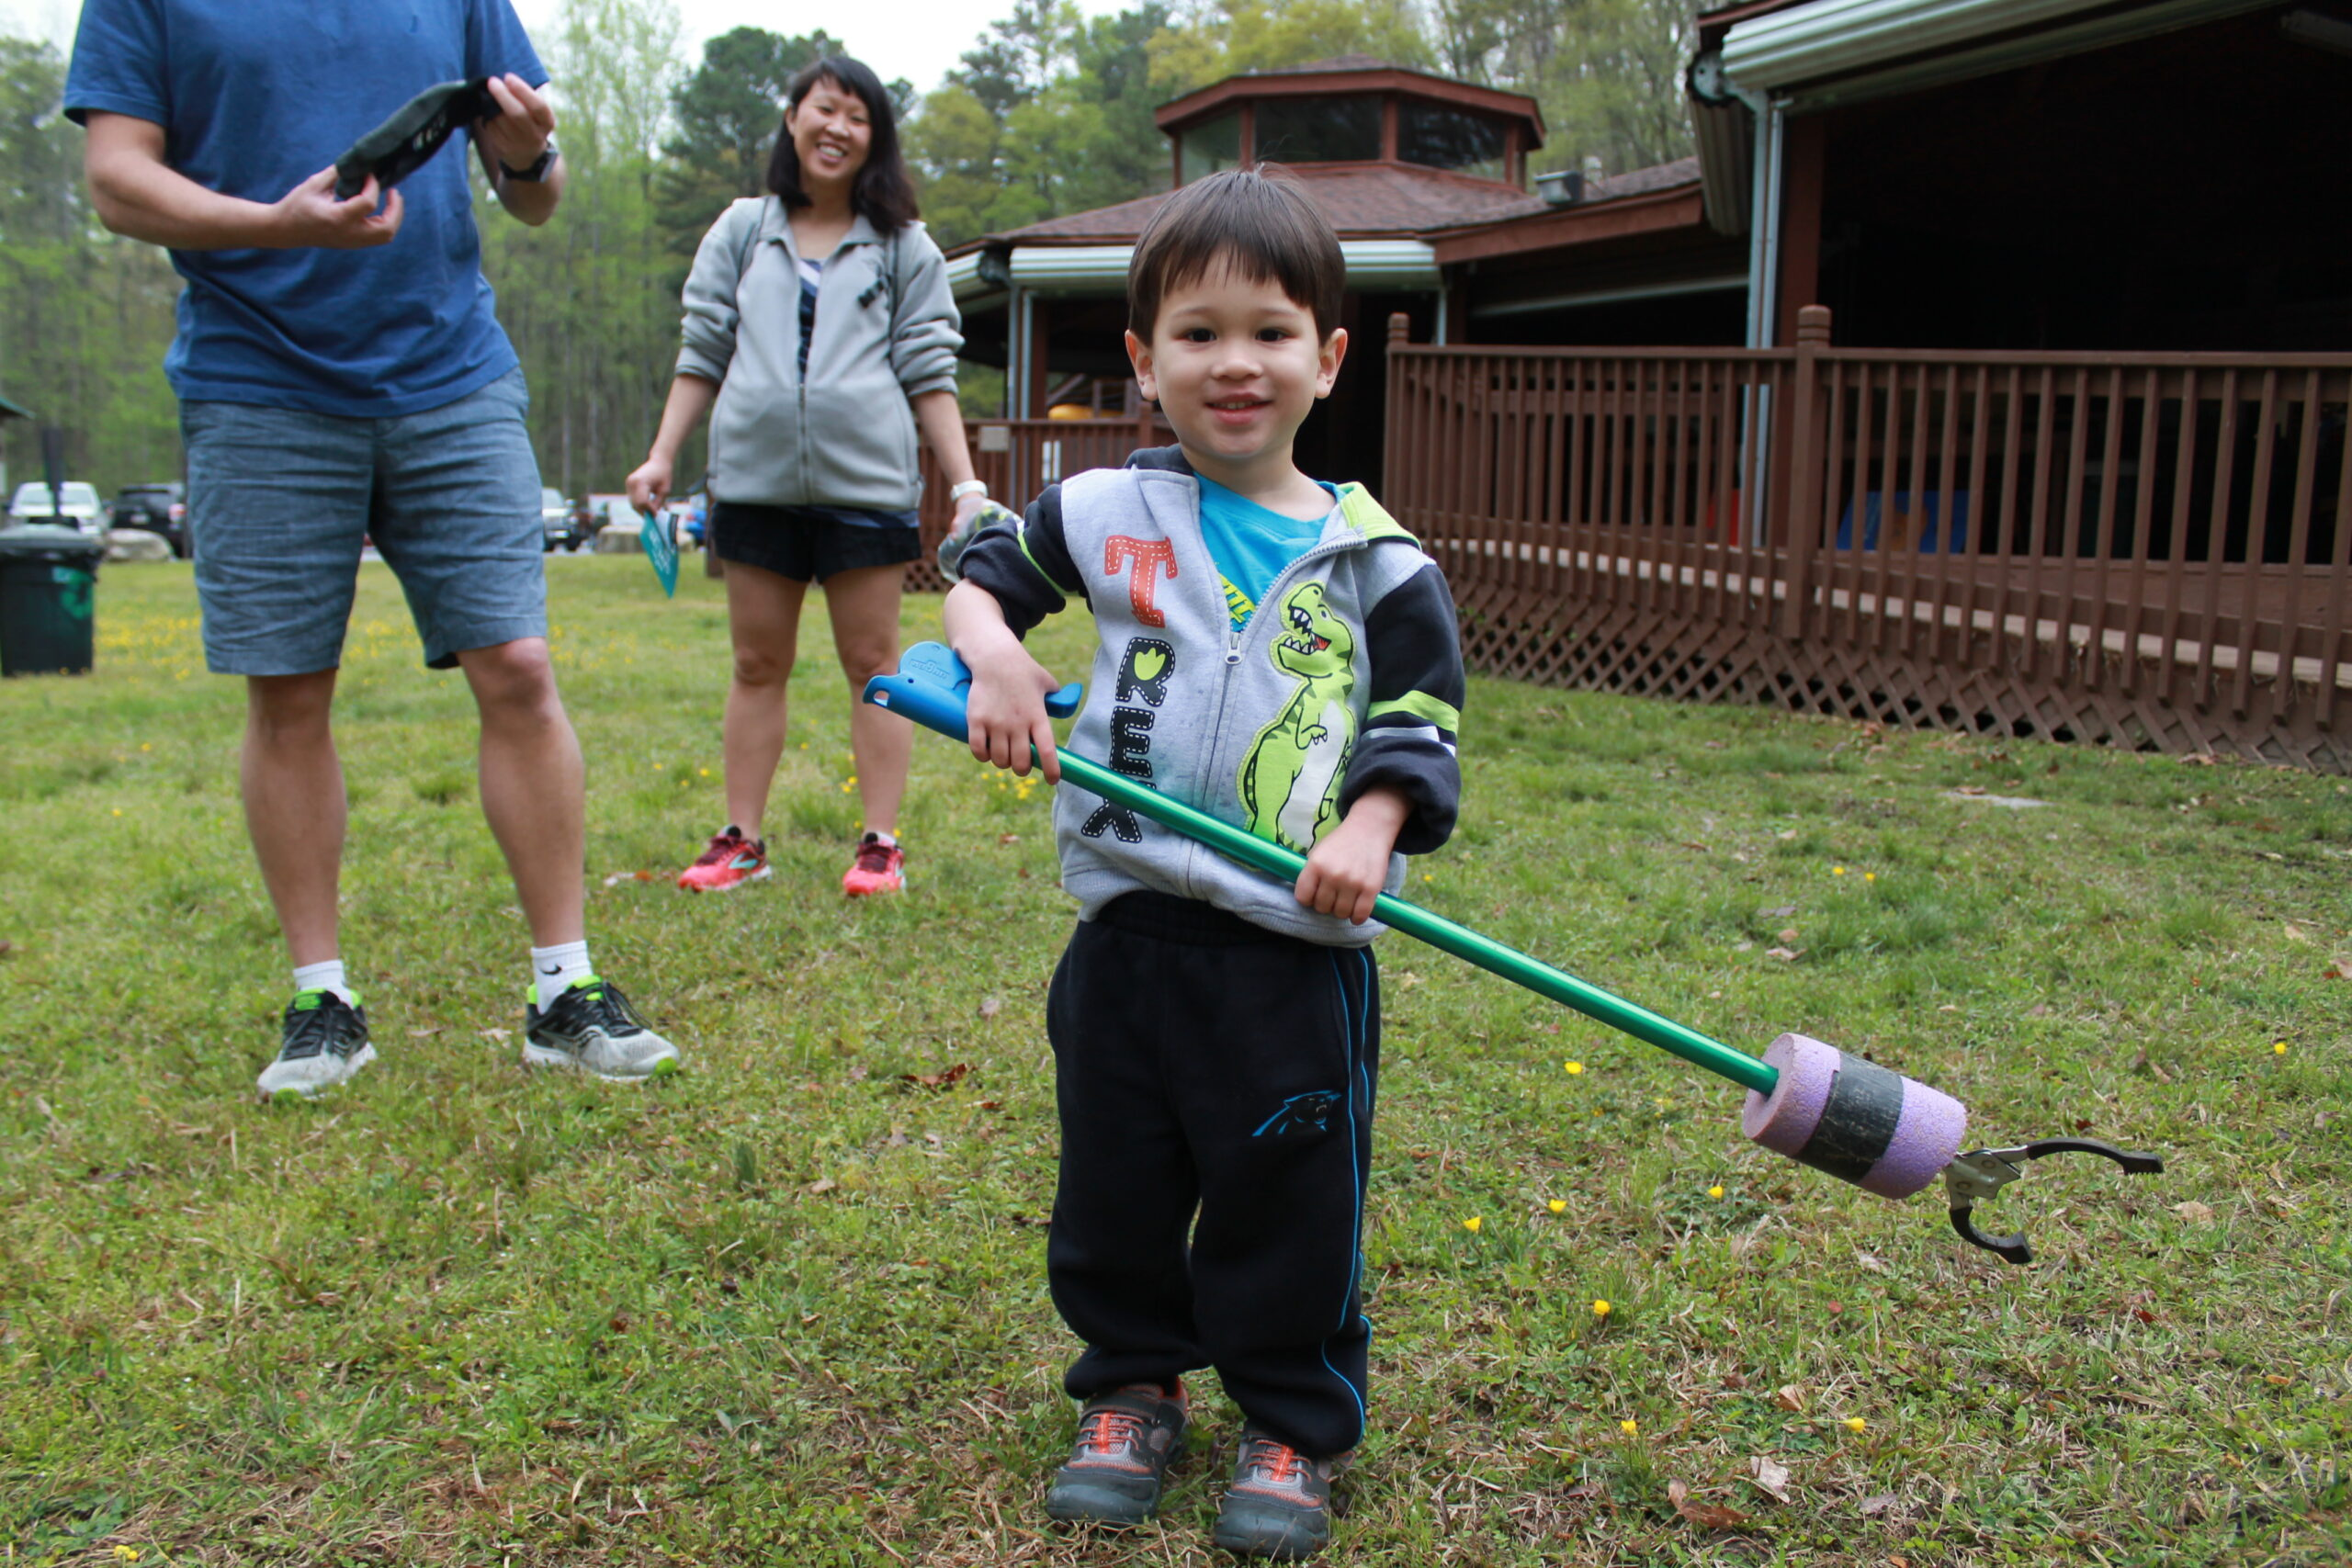 Young boy with trash grabber